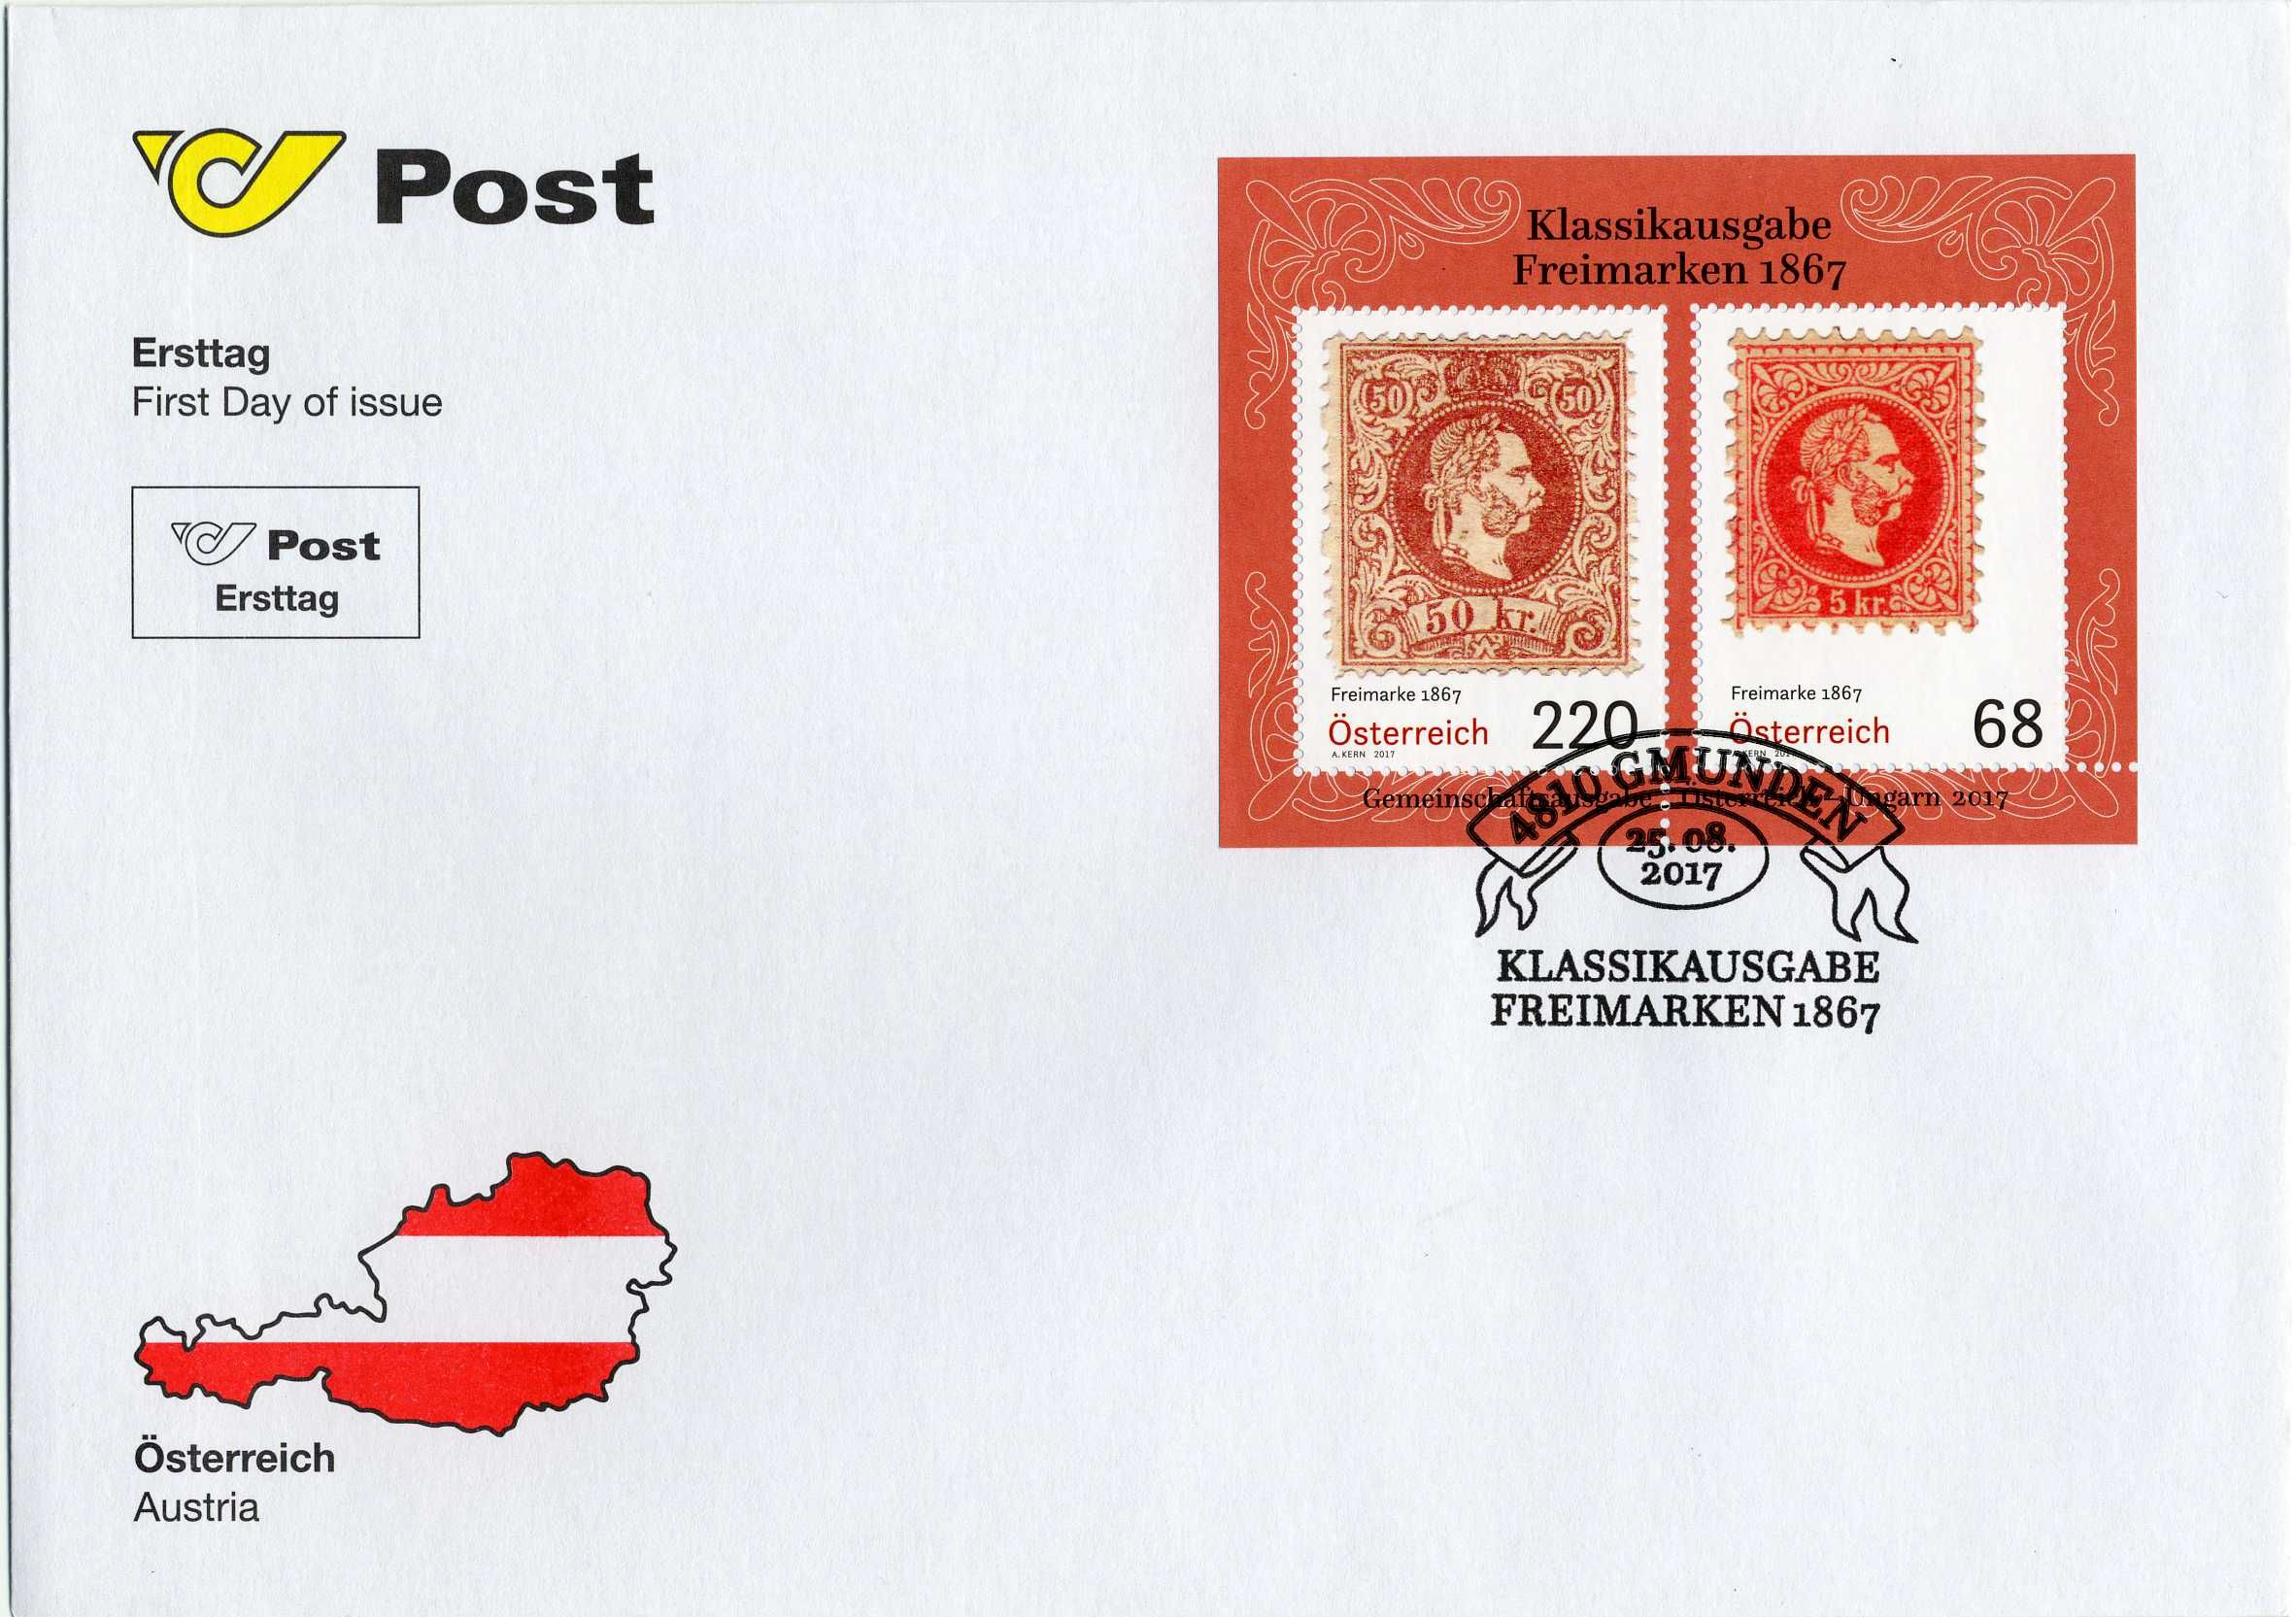 Hungary - Austria joint stamp issue - Austrian FDC